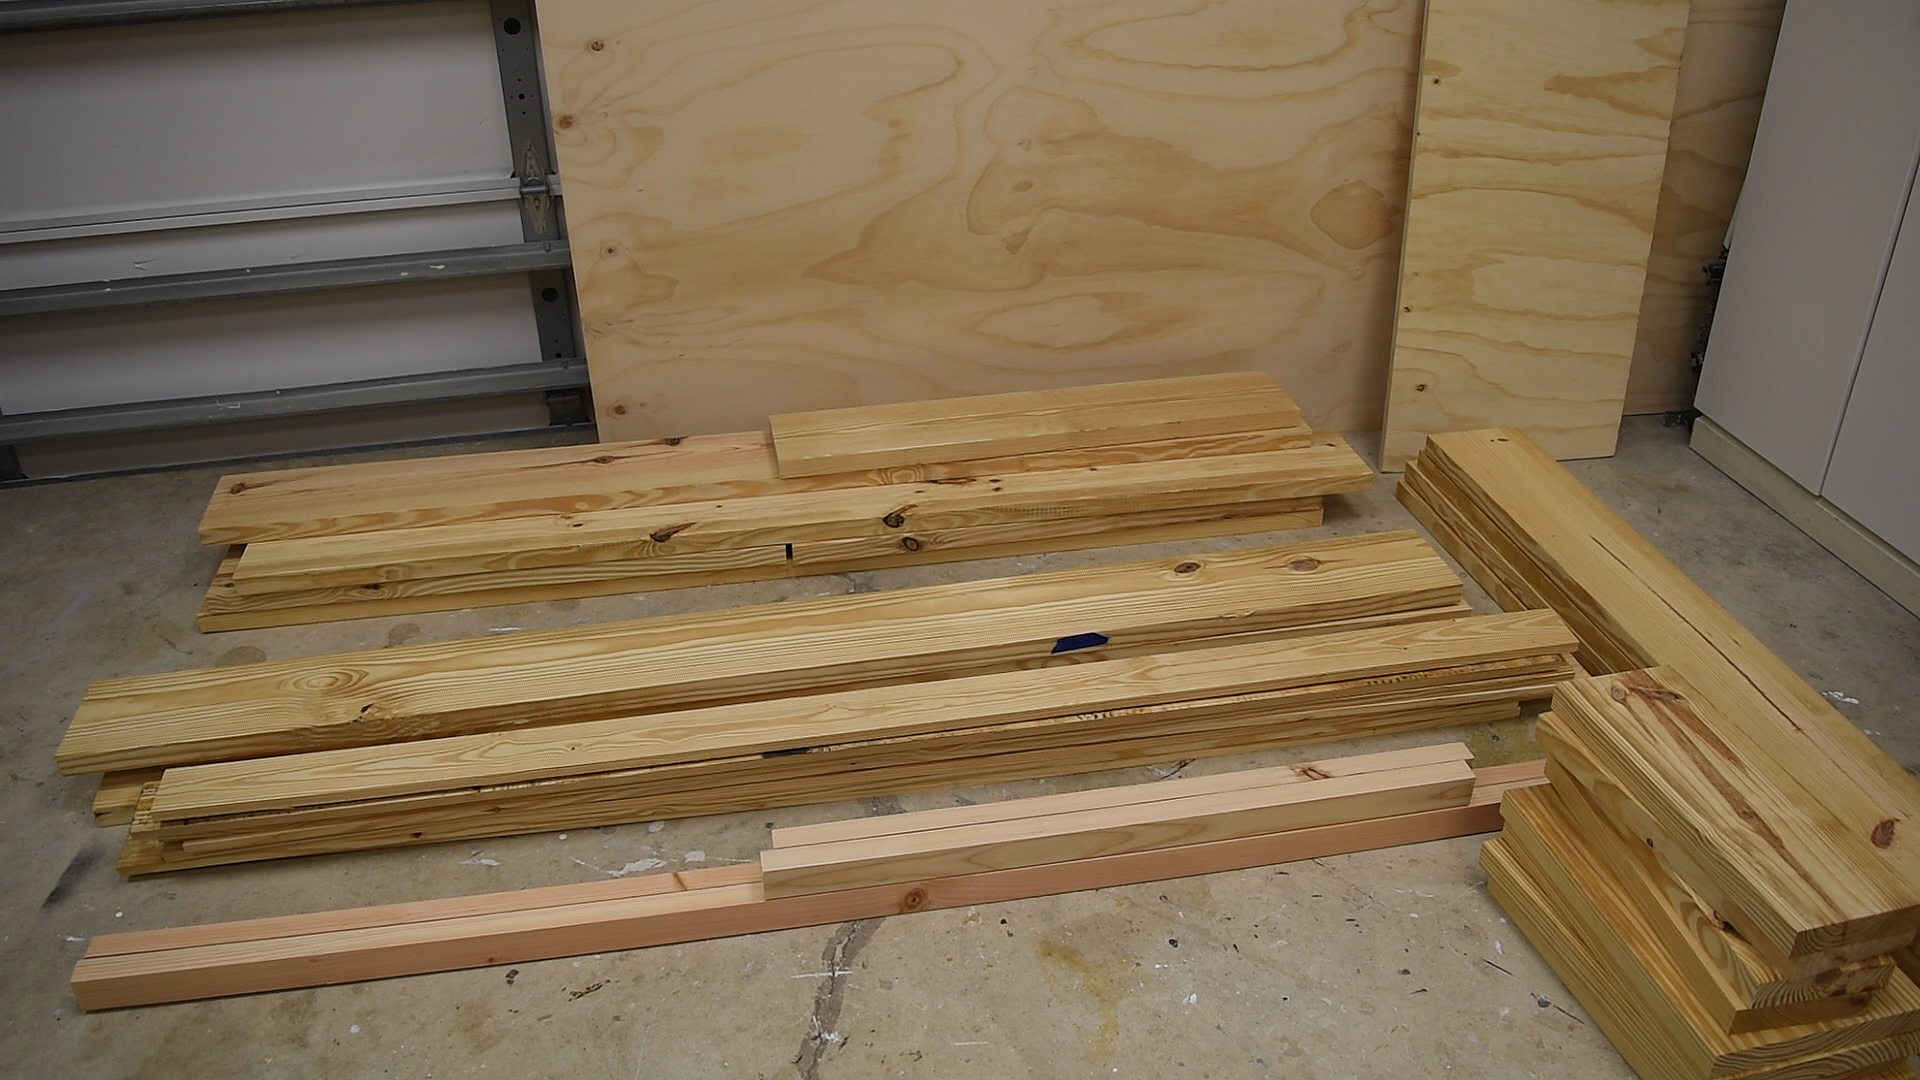 Diy Platform Bed With Floating Night Stands 7 Steps With Pictures Instructables